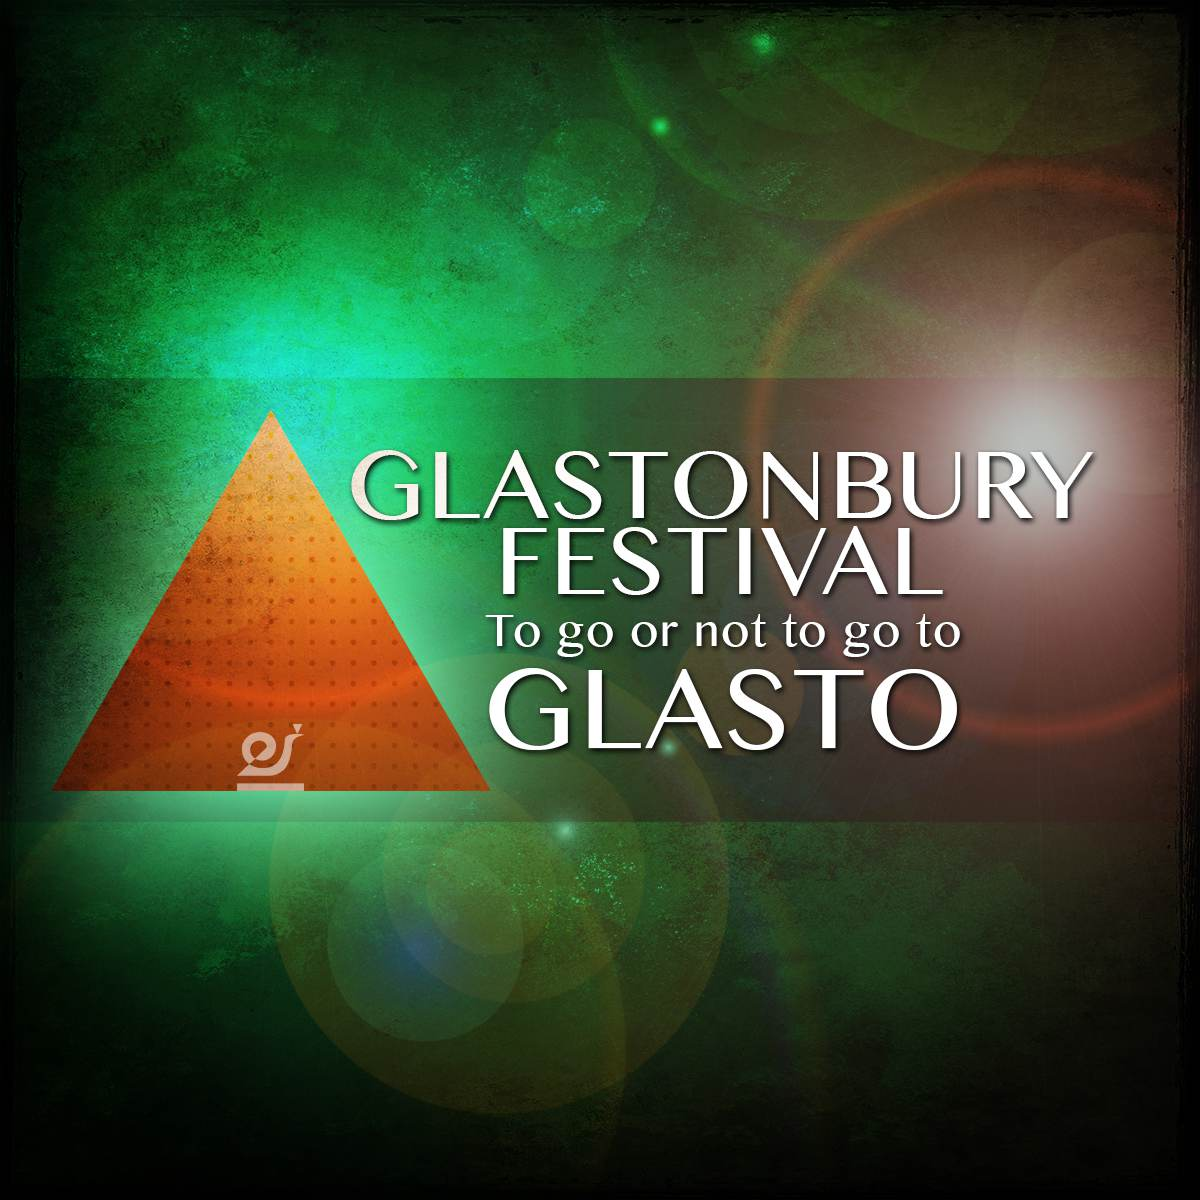 To go or not to go to Glastonbury Festival